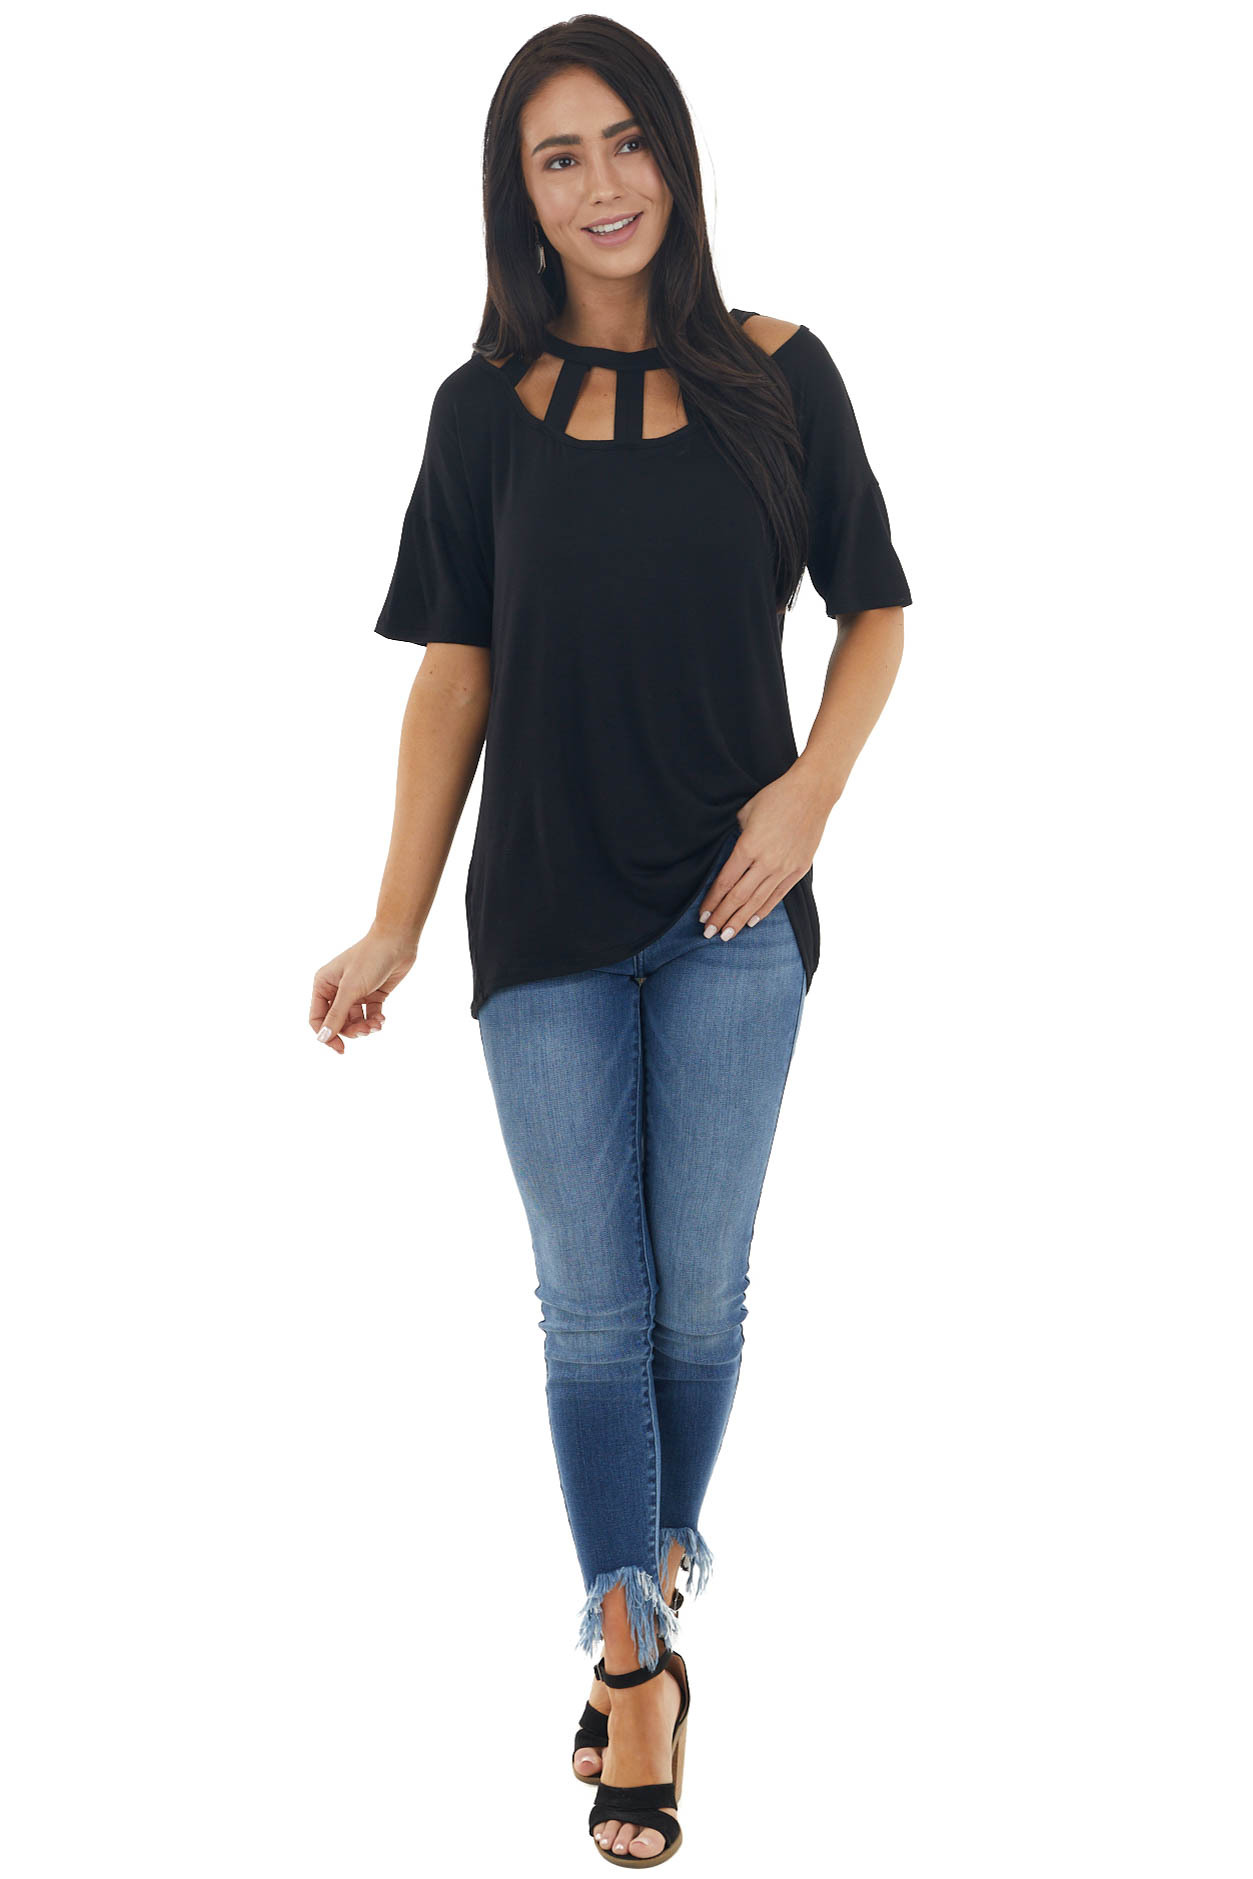 Black Short Sleeve Knit Top with Caged Neckline